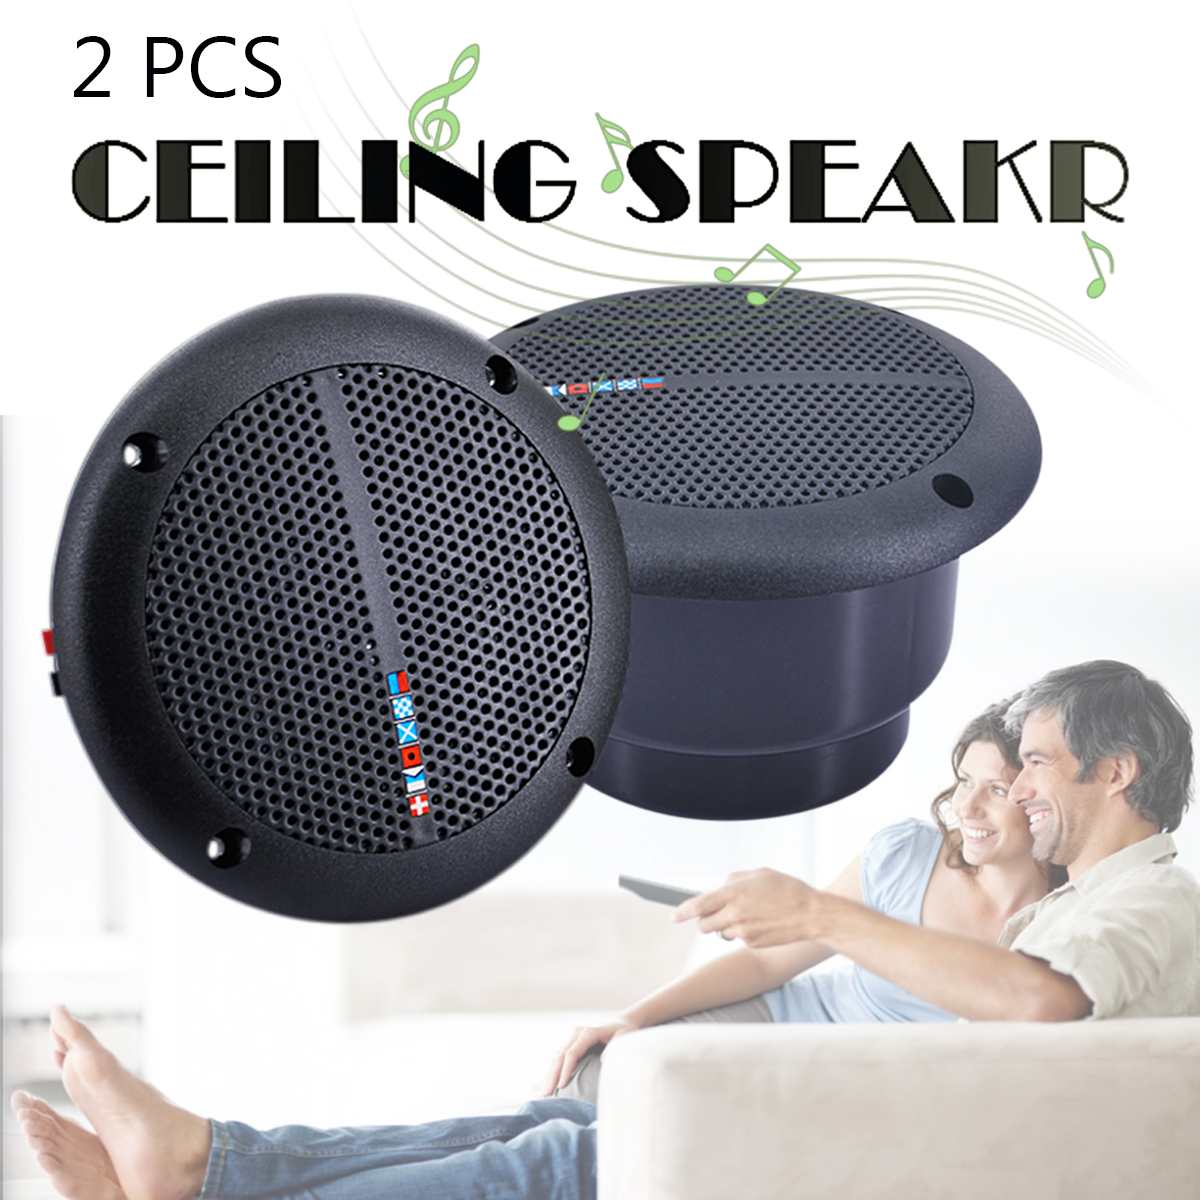 2PCS Ceiling Speaker Loudspeakers Amplifier Waterproof Marine Boat Ceiling Wall Speakers Kitchen Bathroom Water Resistant